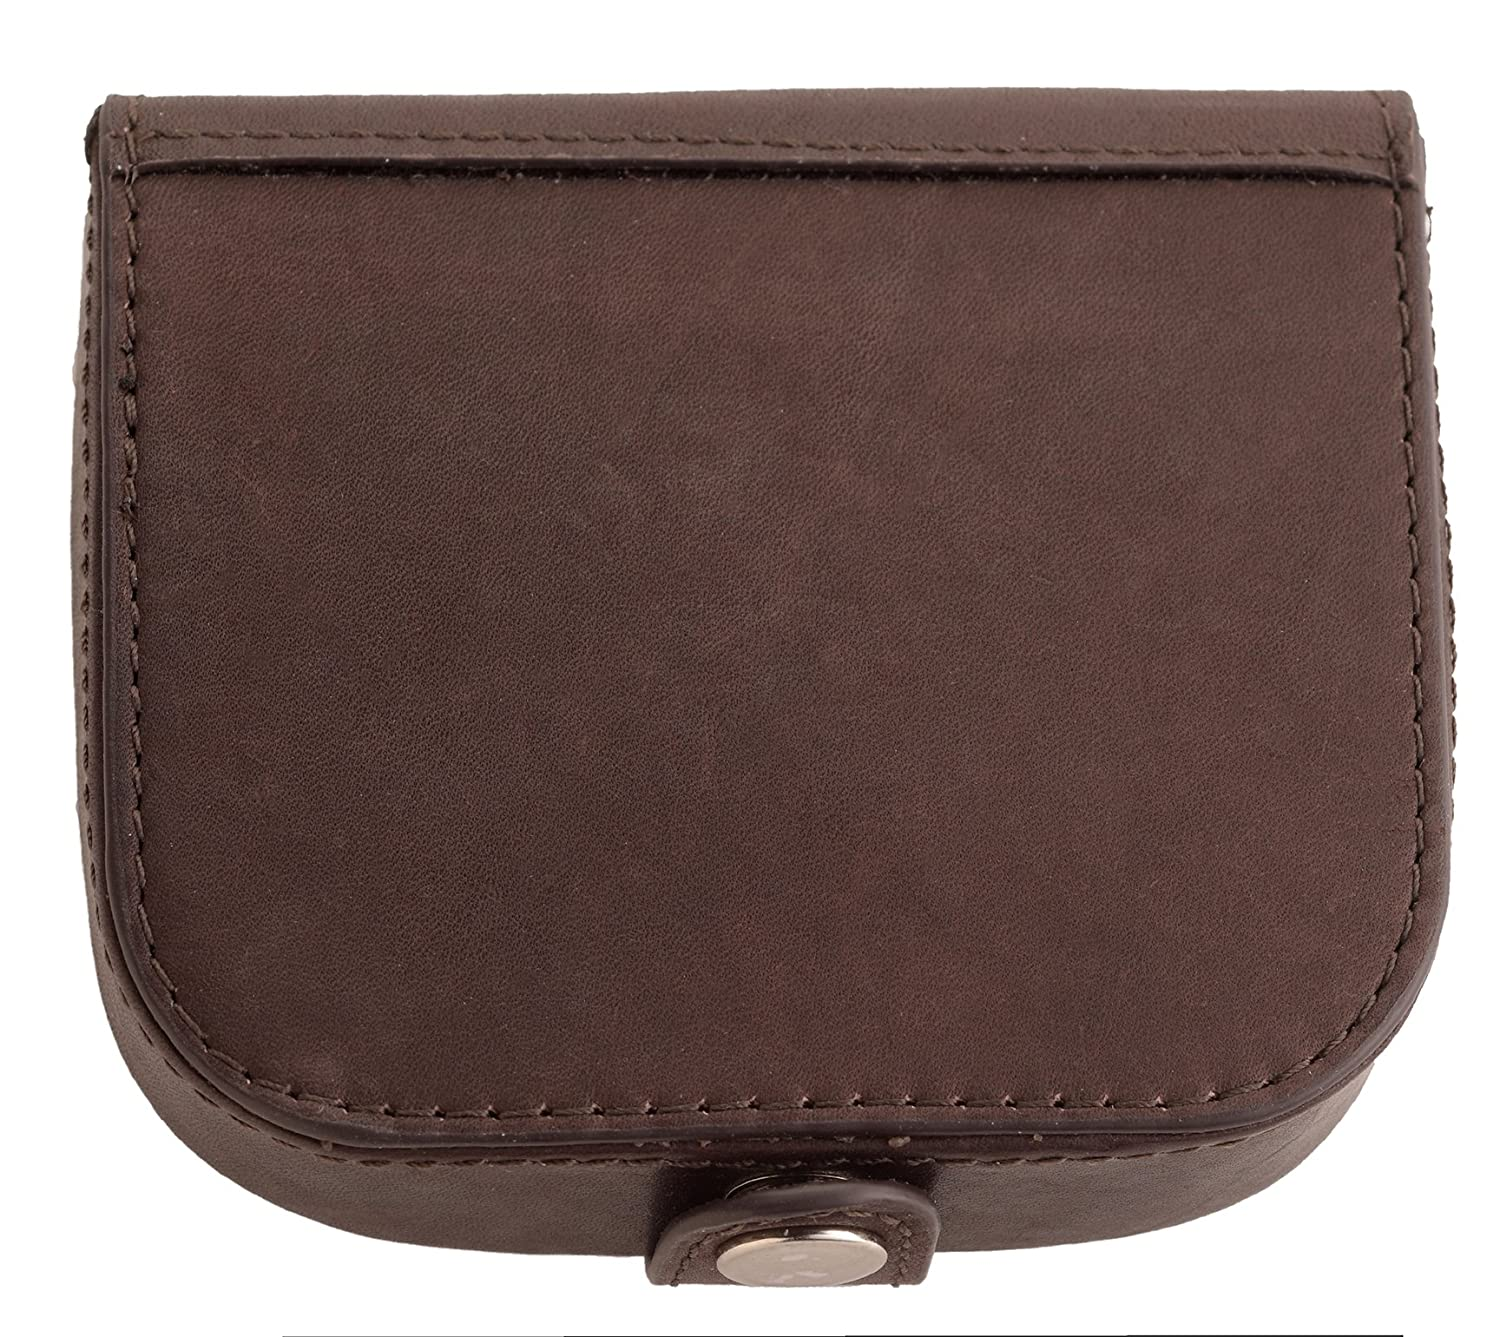 Super Soft Premium Grade Leather Tray - Coin Purse with Note Section in Black Arnicus